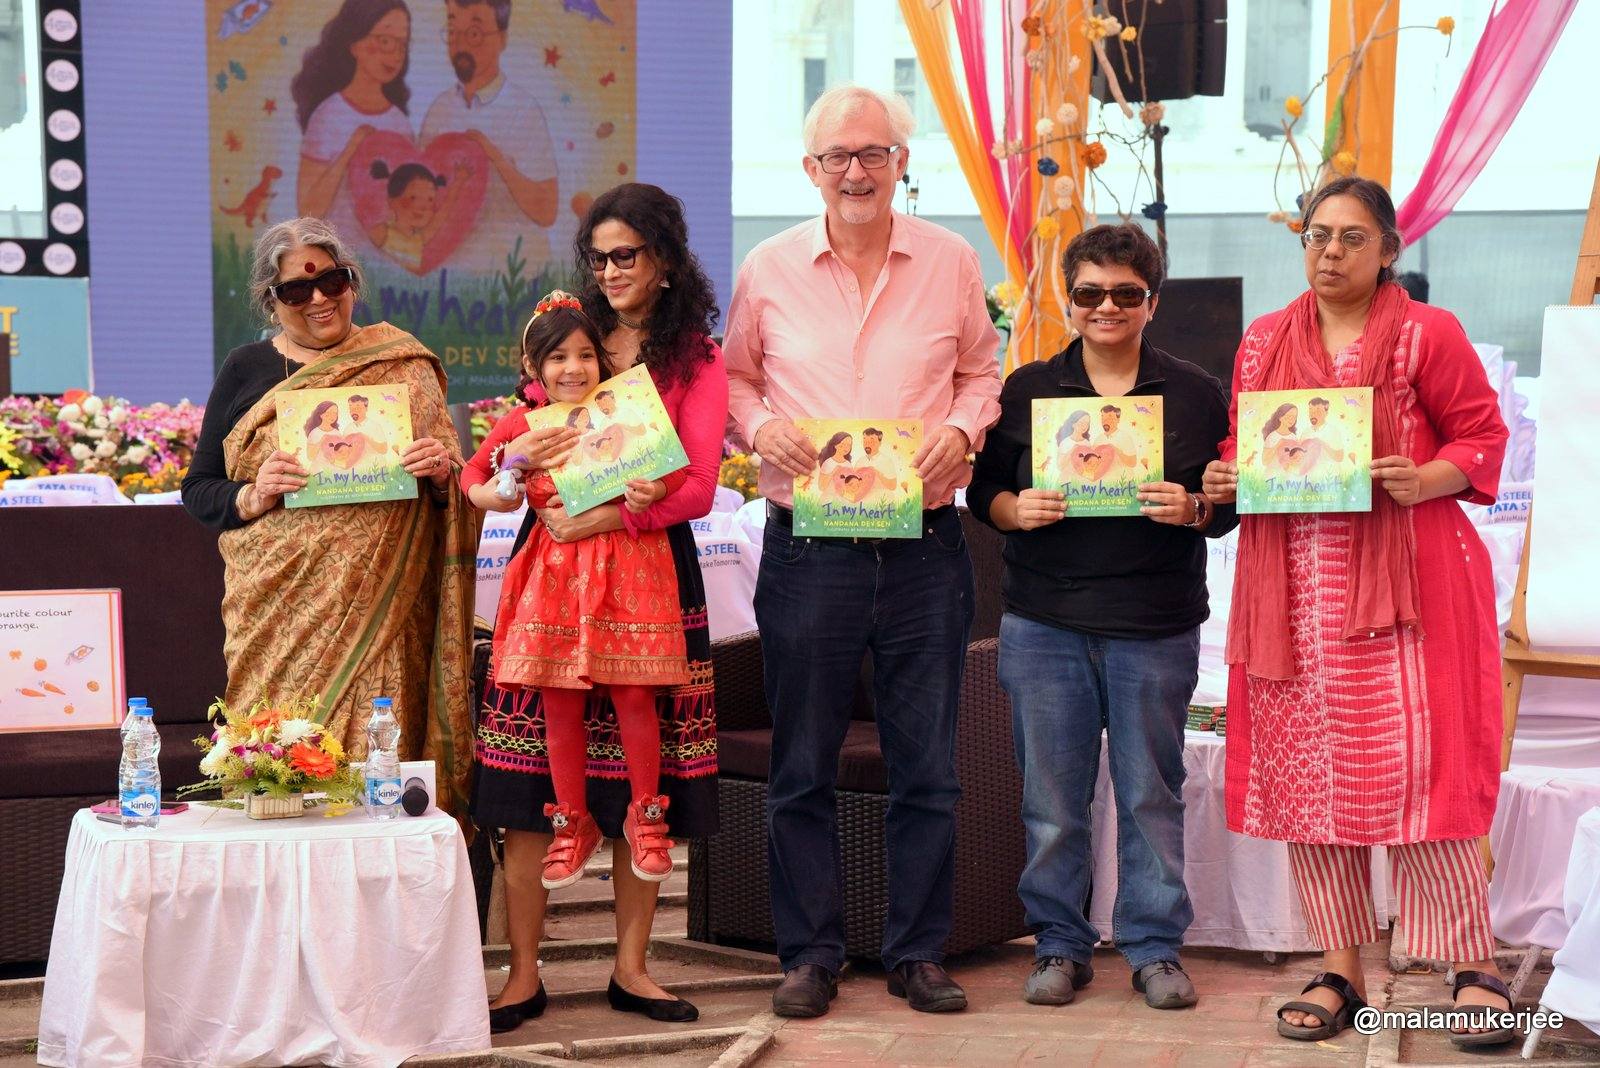 Nandana Sen launches her sixth book 'In My Heart' on adoption  Outlook - click for full story  January 25, 2019